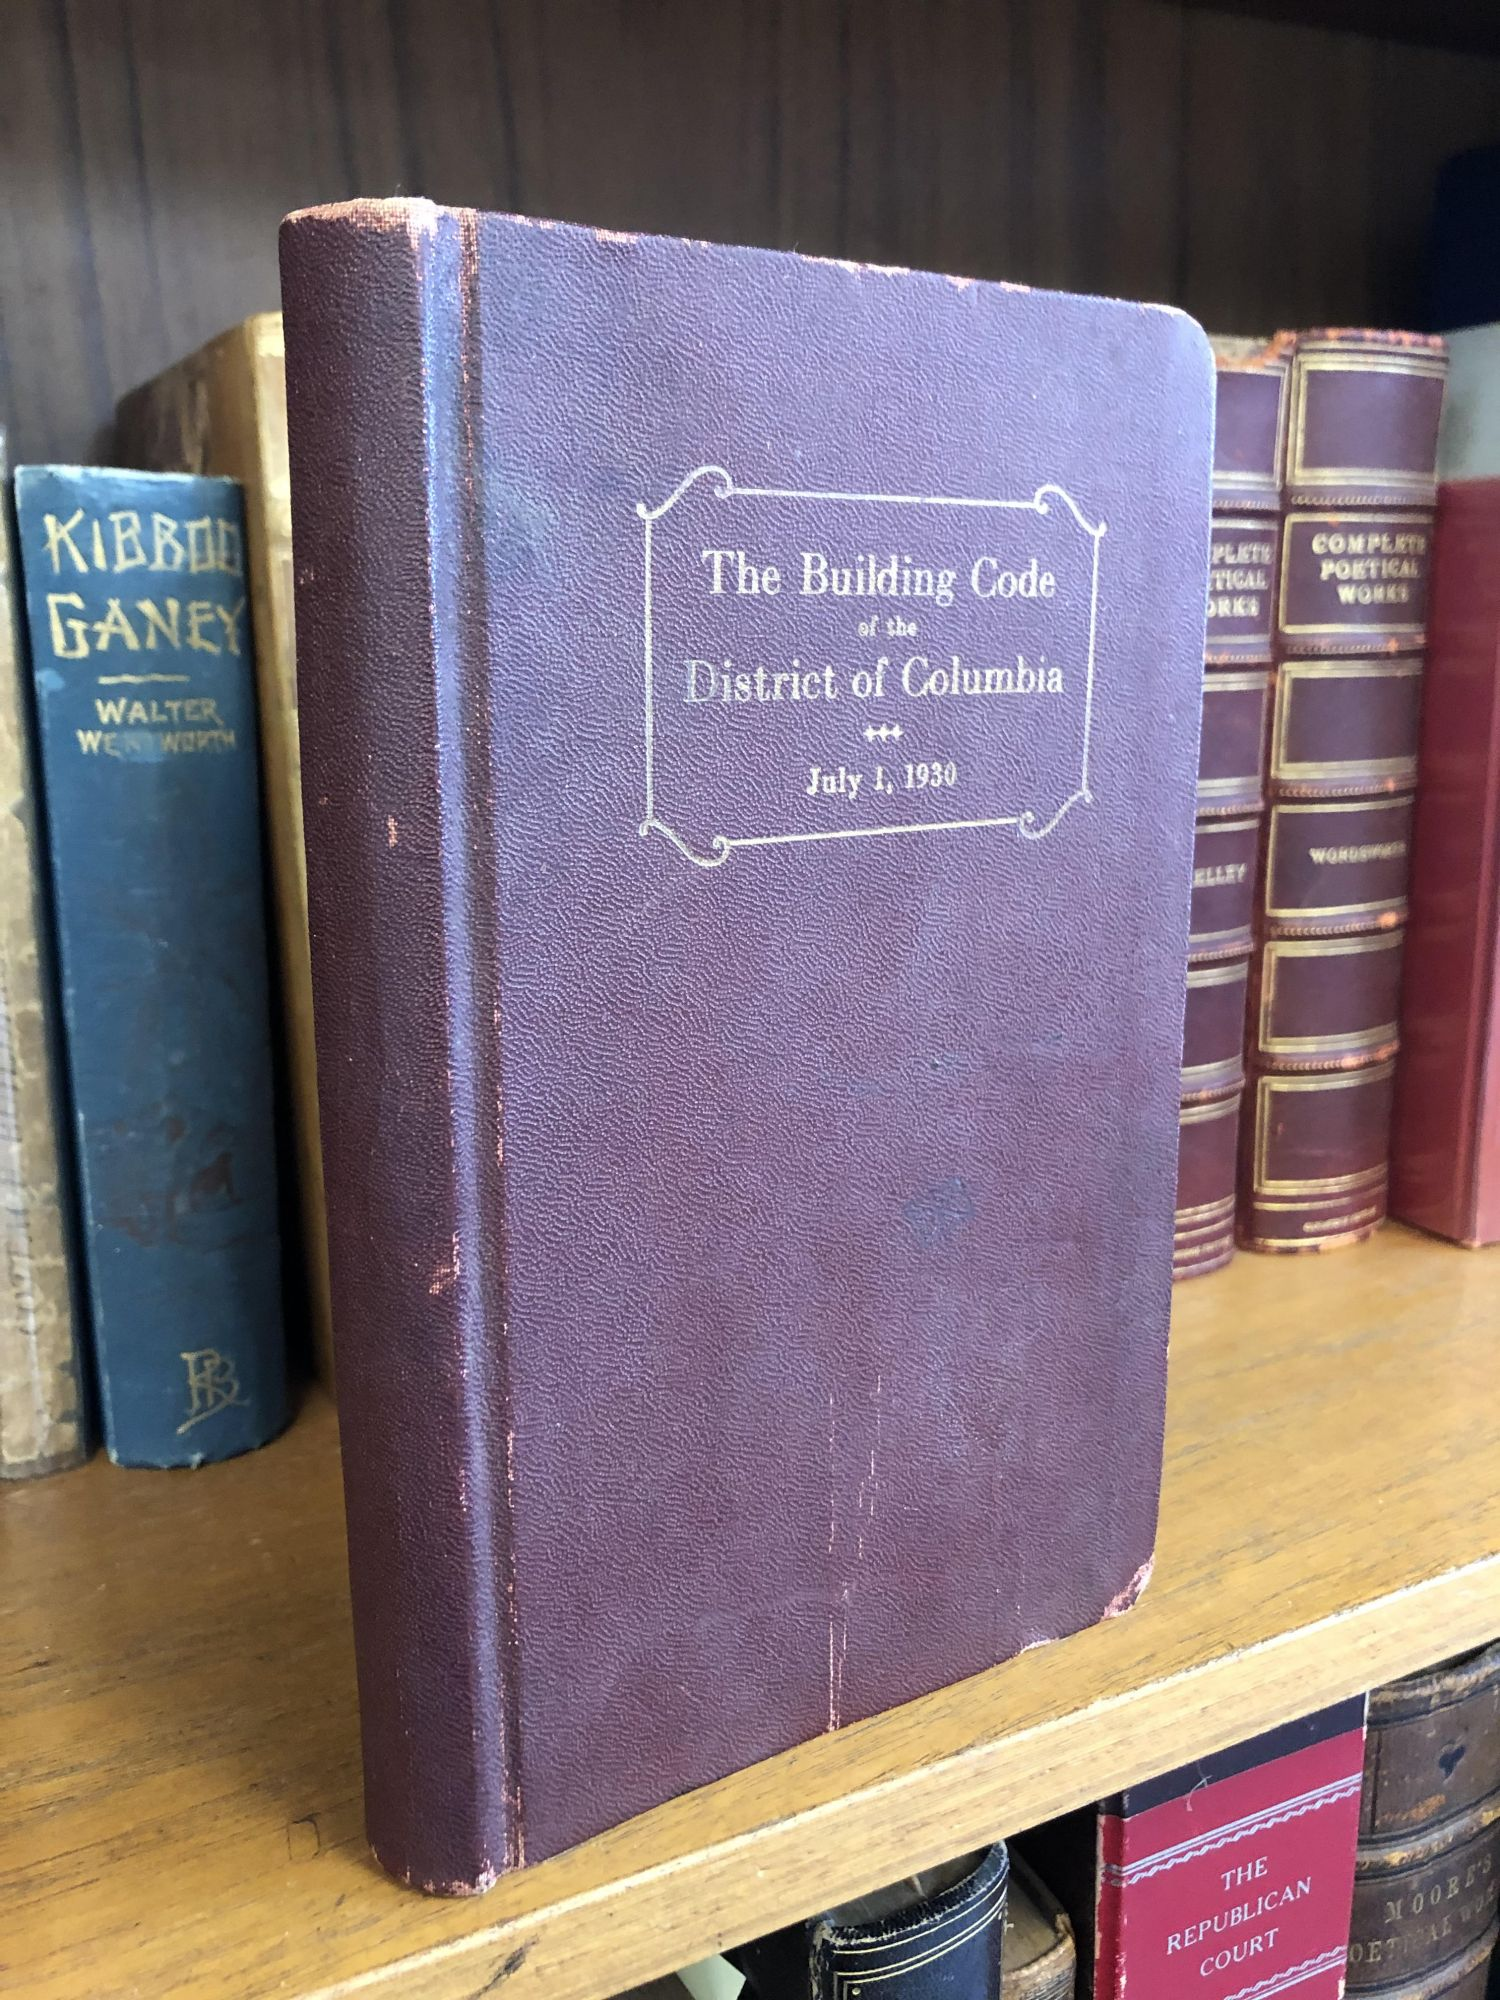 THE BUILDING CODE OF THE DISTRICT OF COLUMBIA